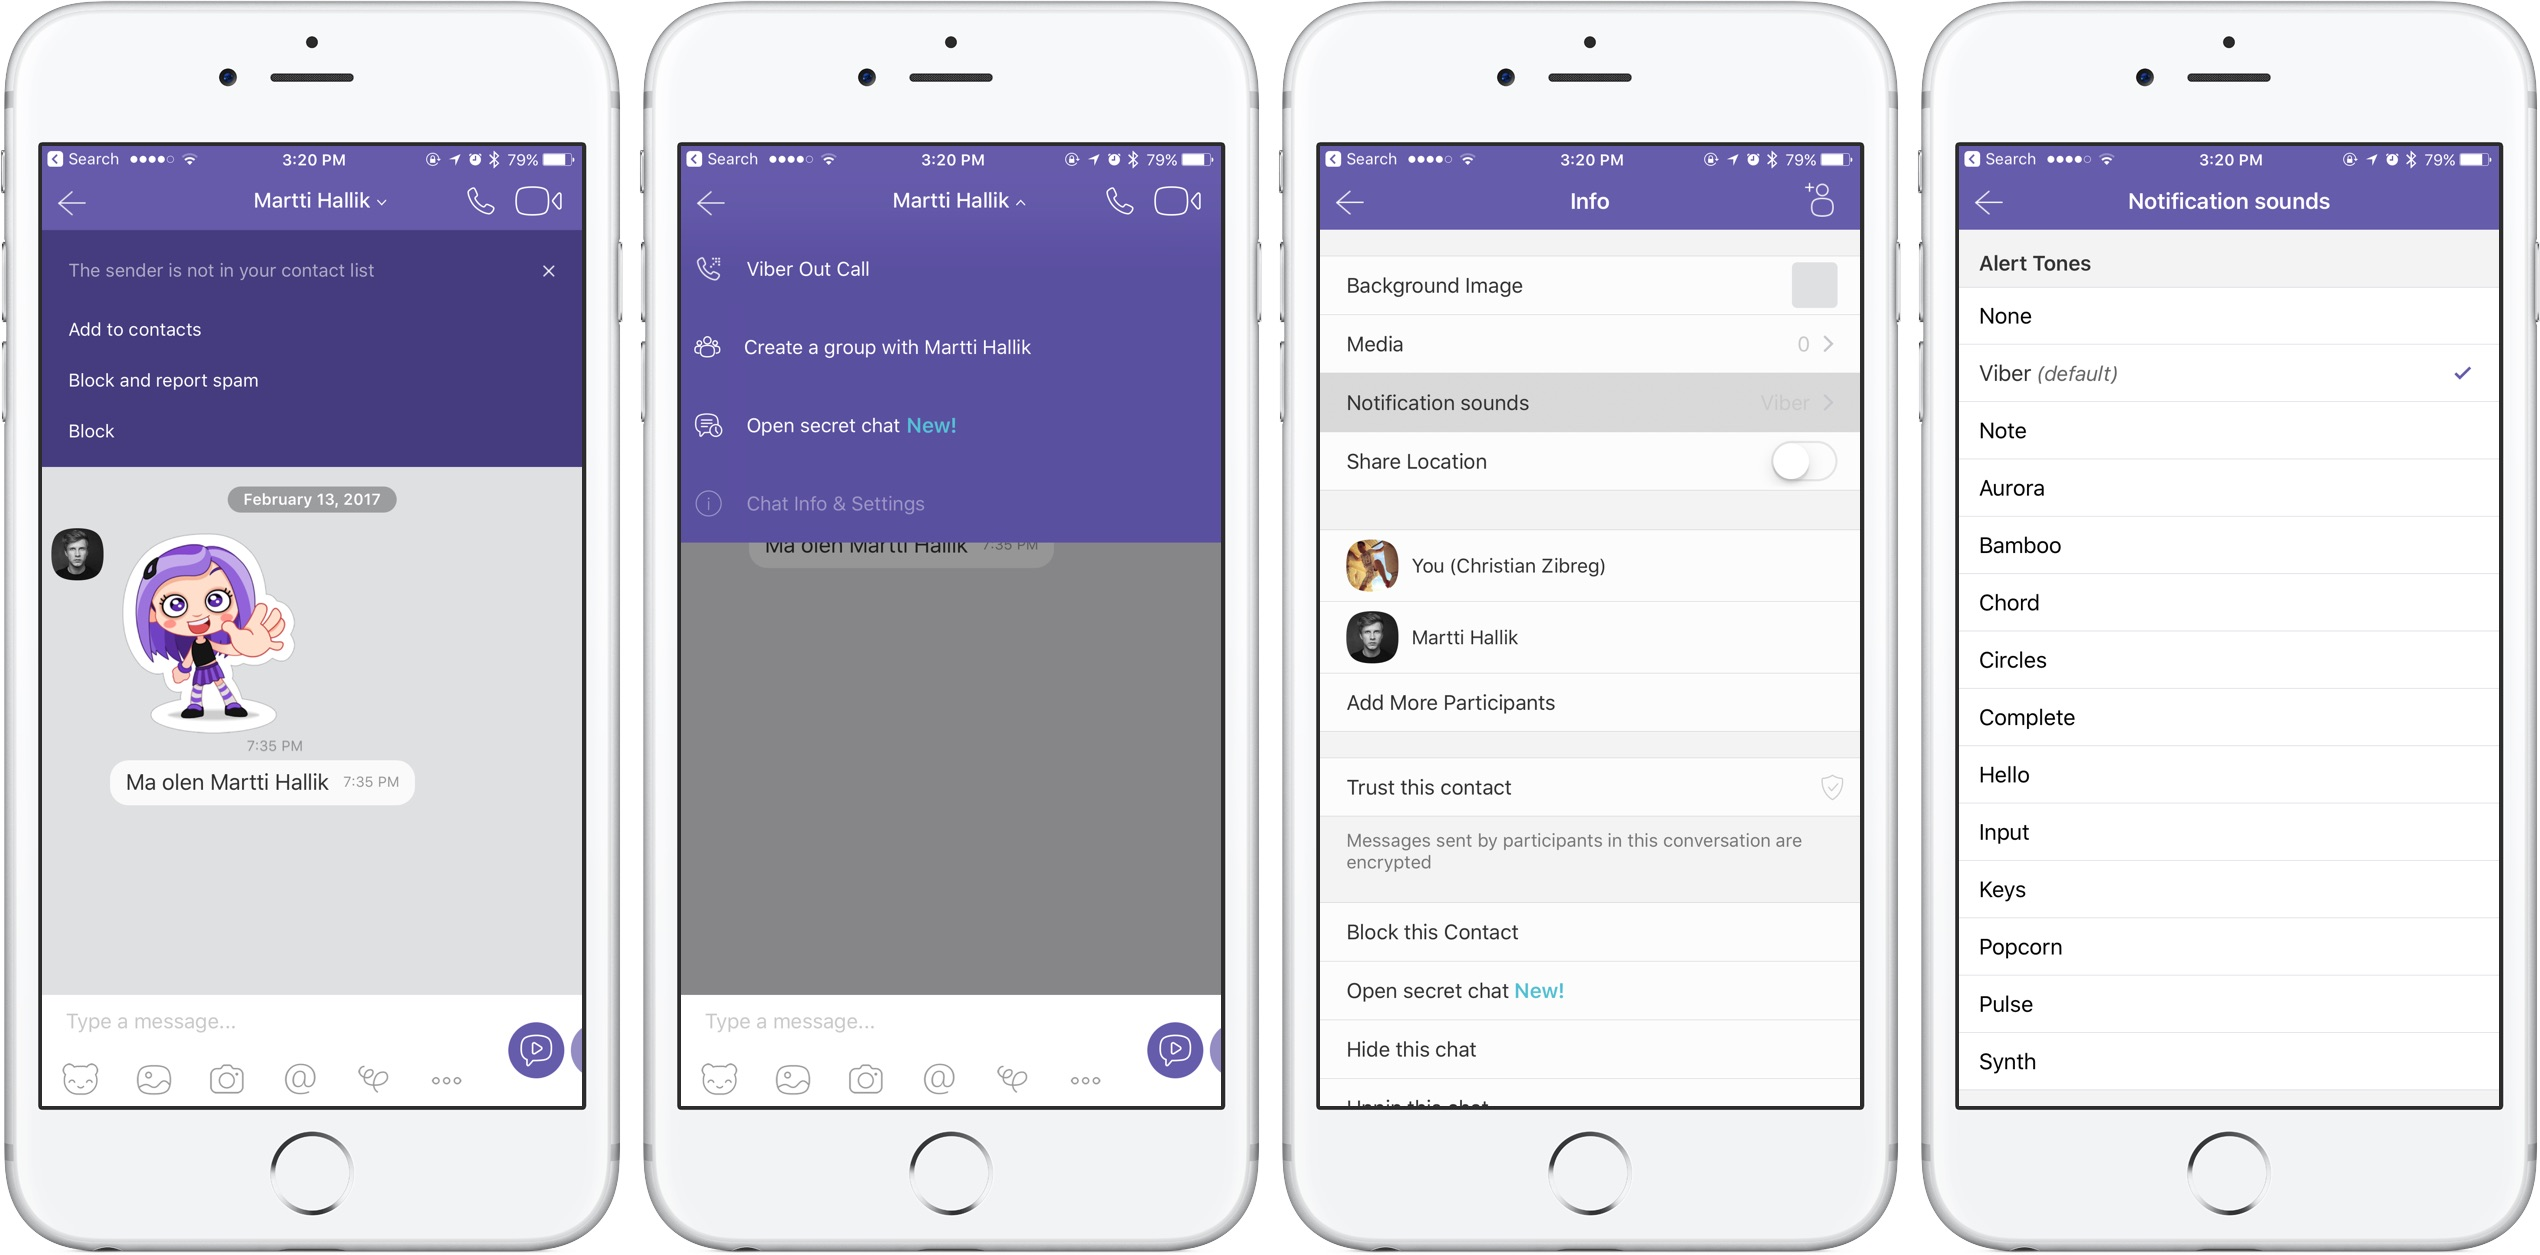 viber notification sound chats